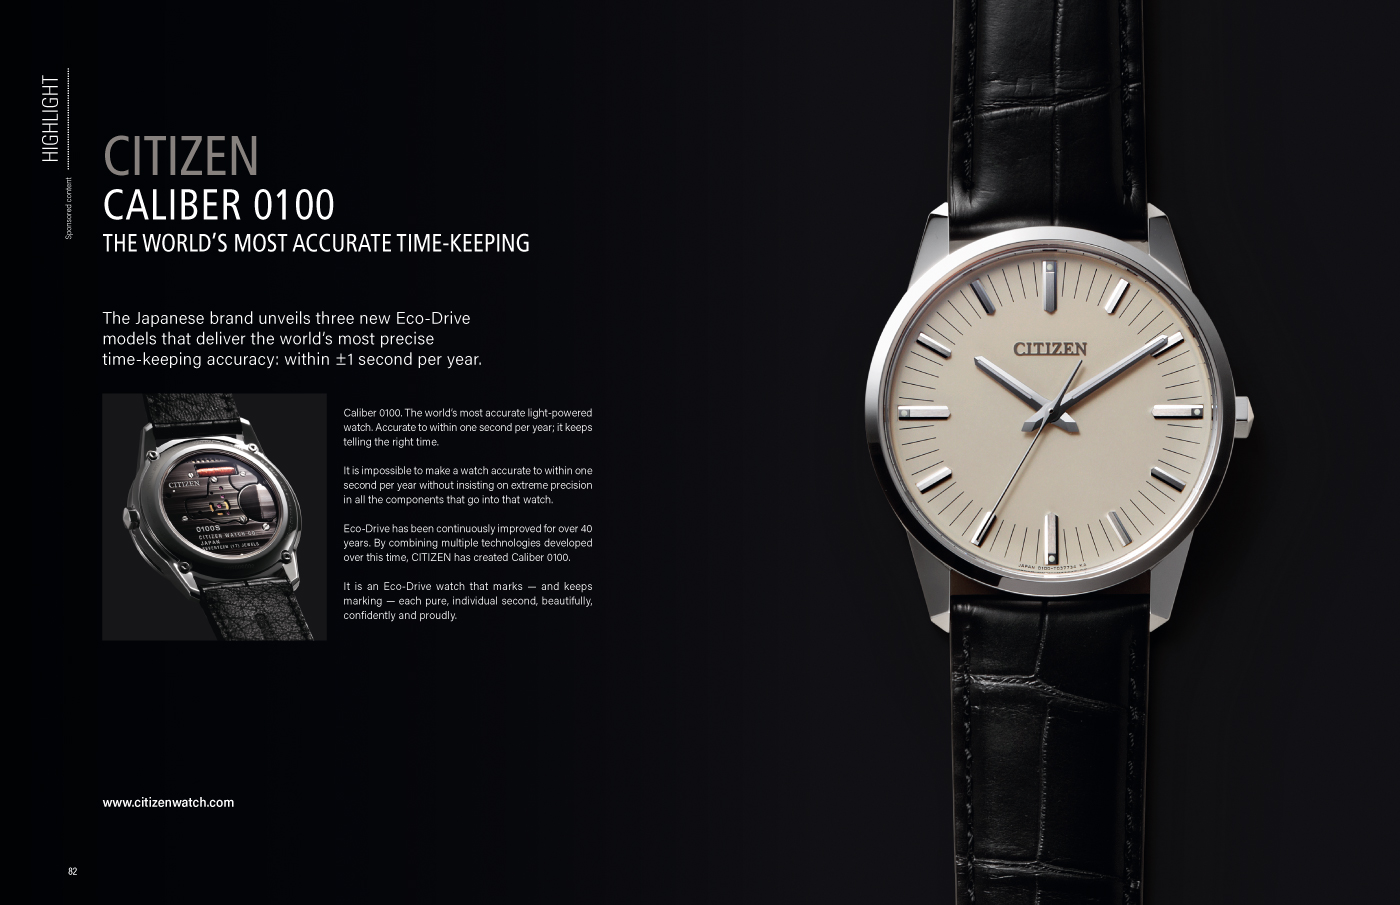 Citizen Caliber 0100: the world's most accurate timekeeping